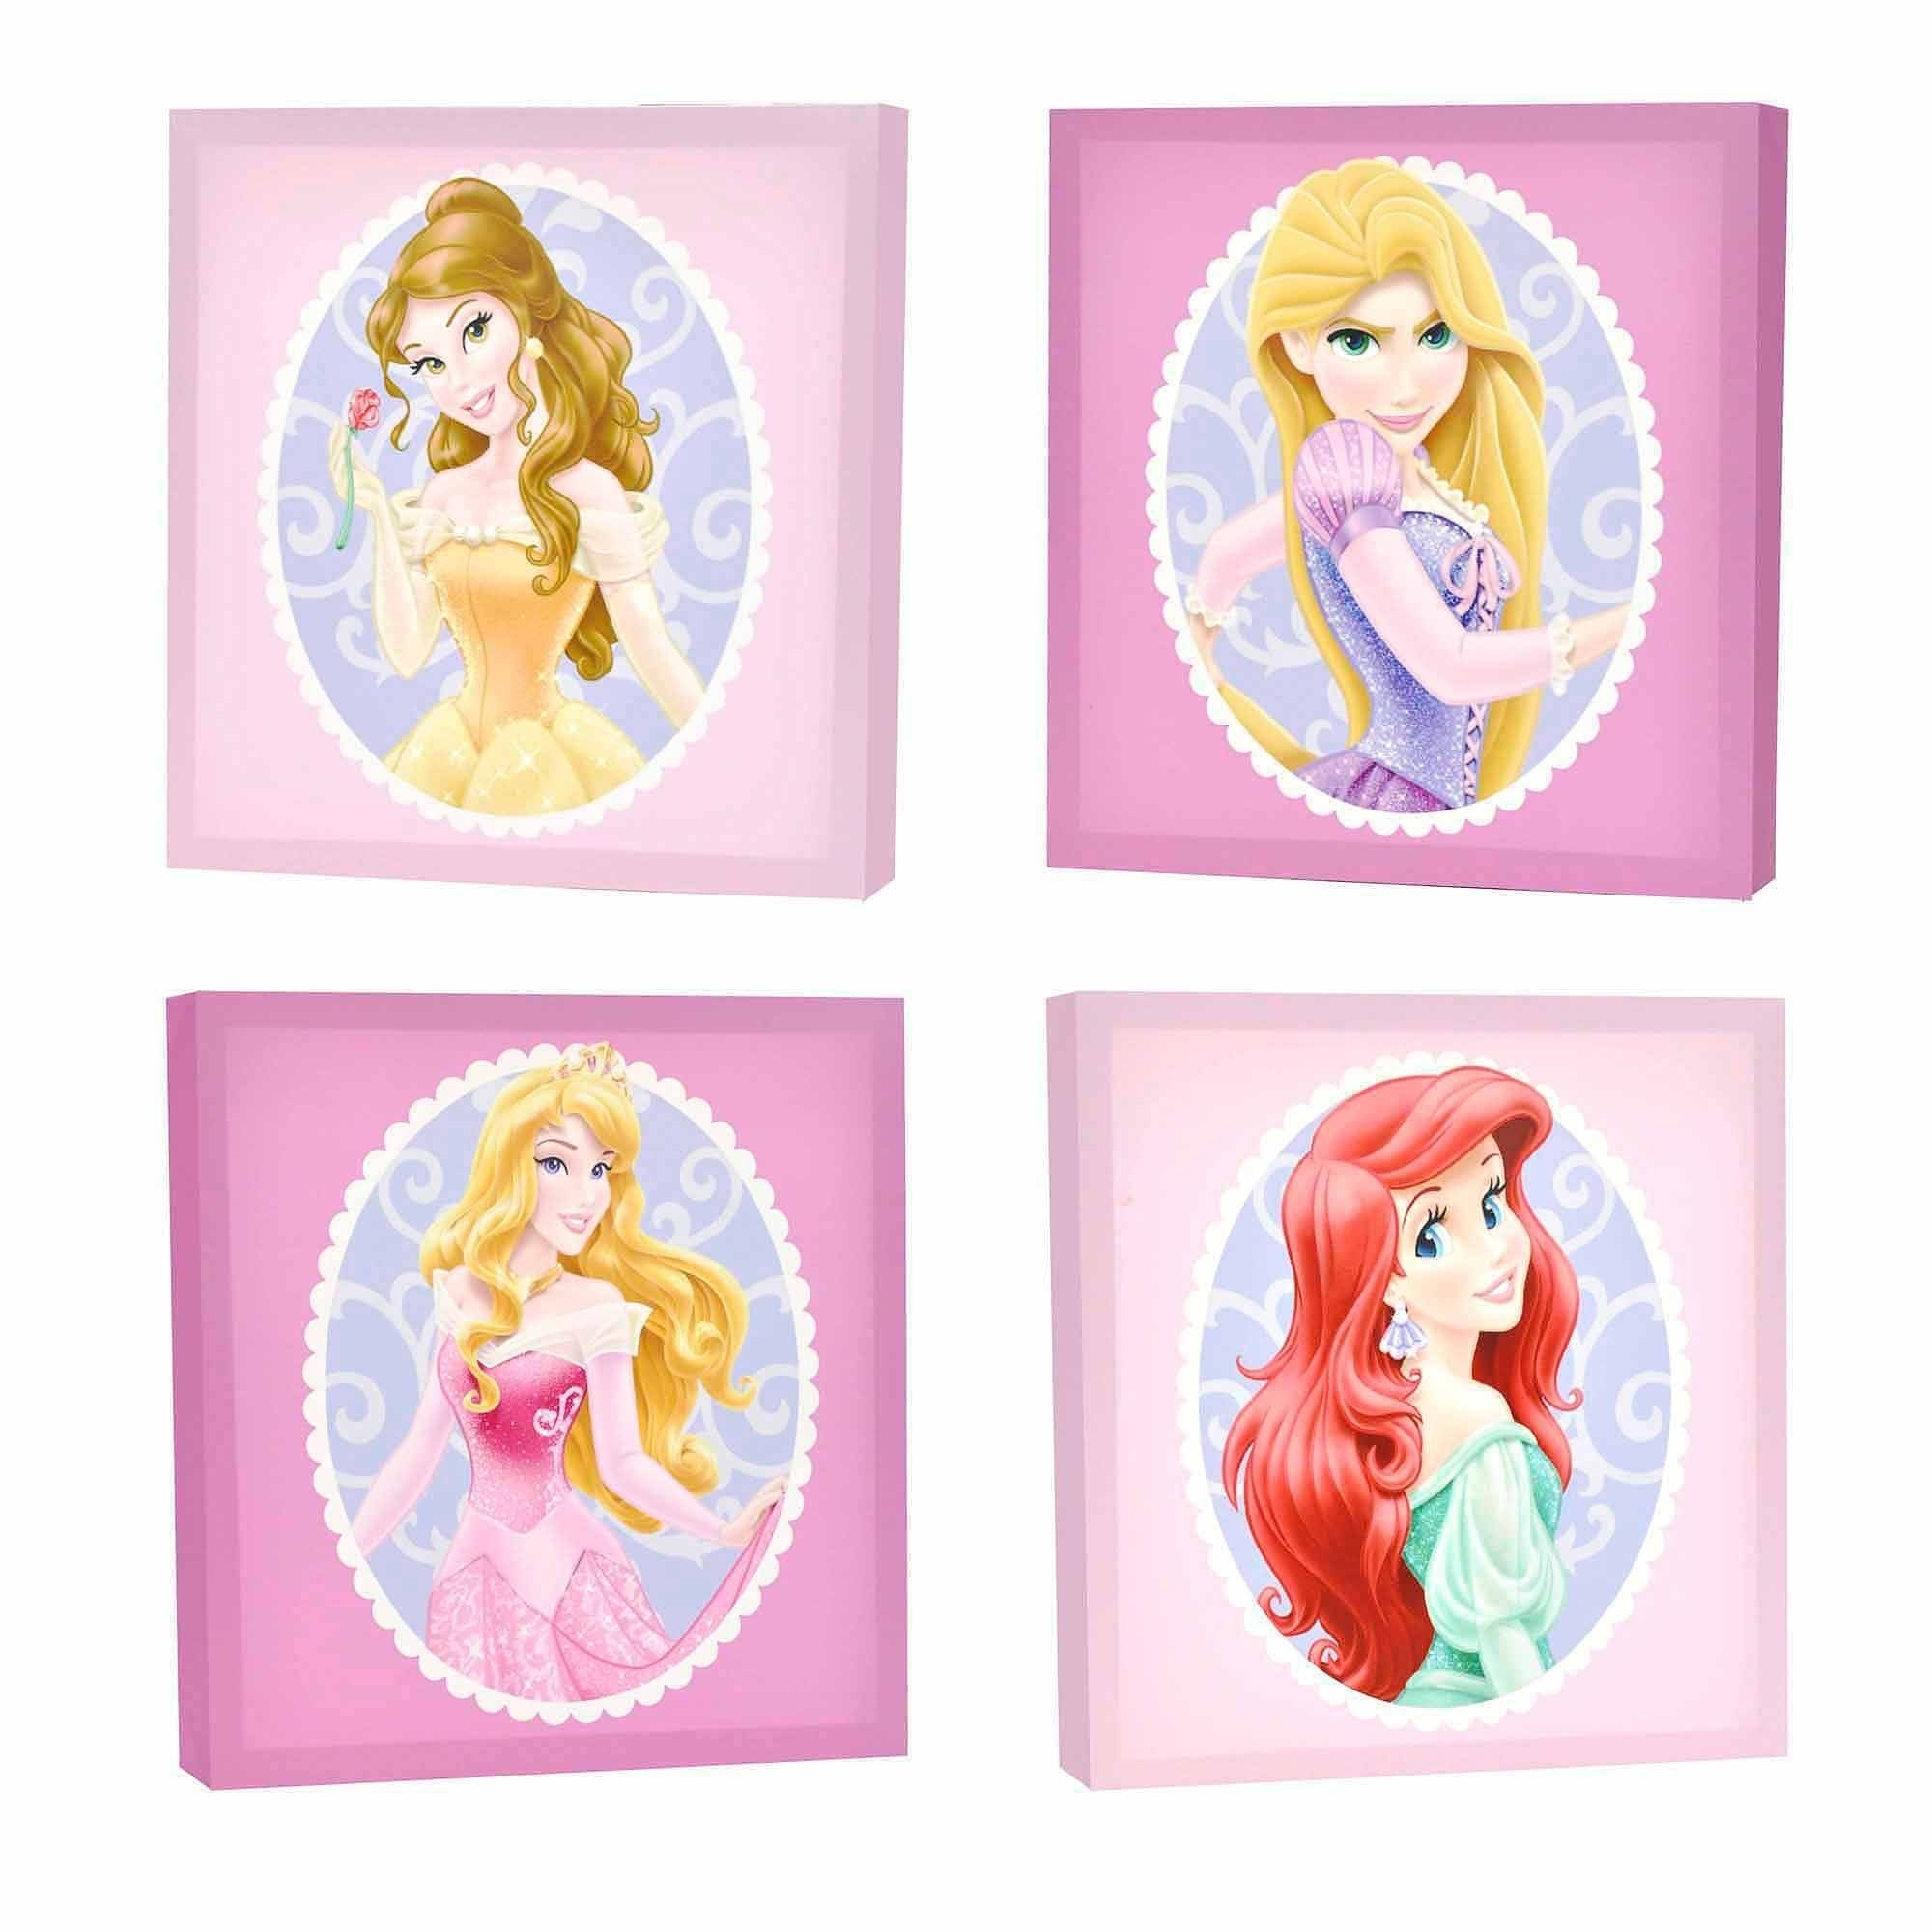 The Best Princess Canvas Wall Art Intended For 2018 Elsa Canvas Wall Art (View 11 of 15)